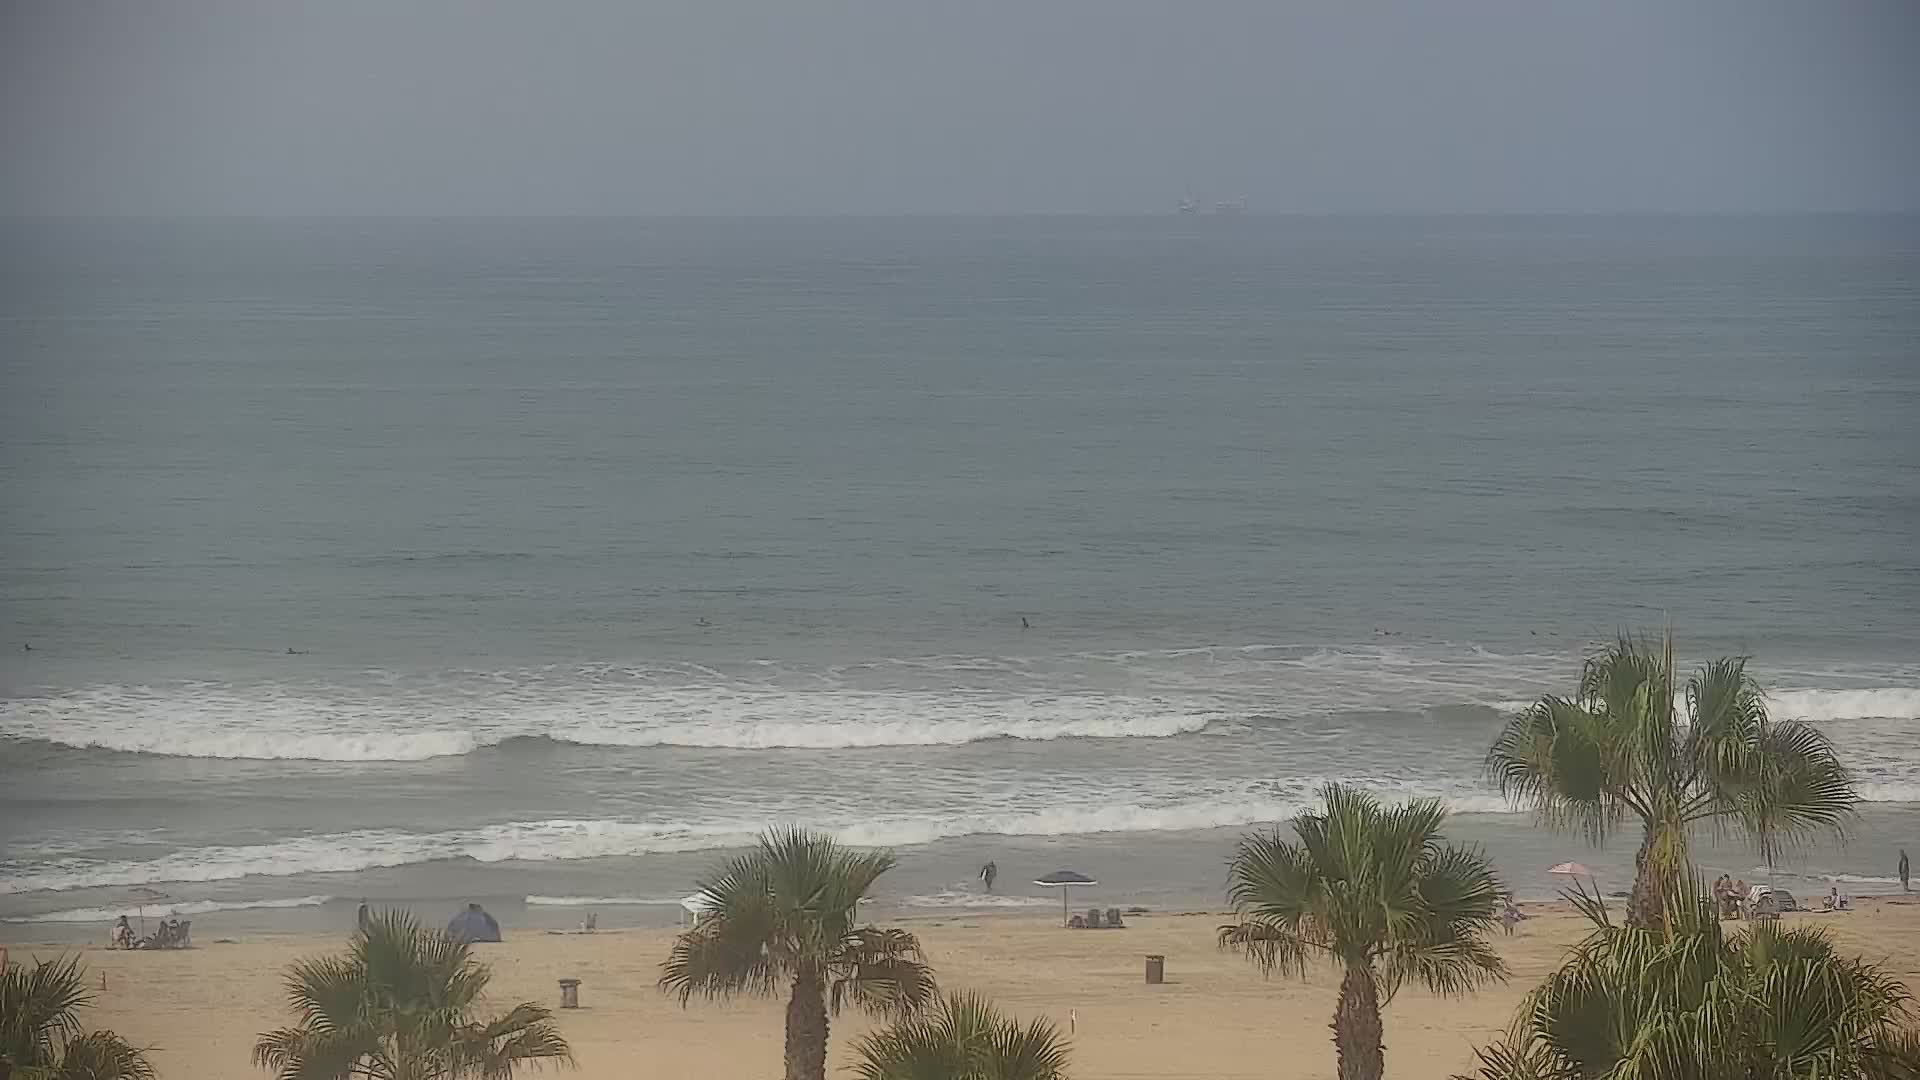 Huntington Beach Live Earth Webcams